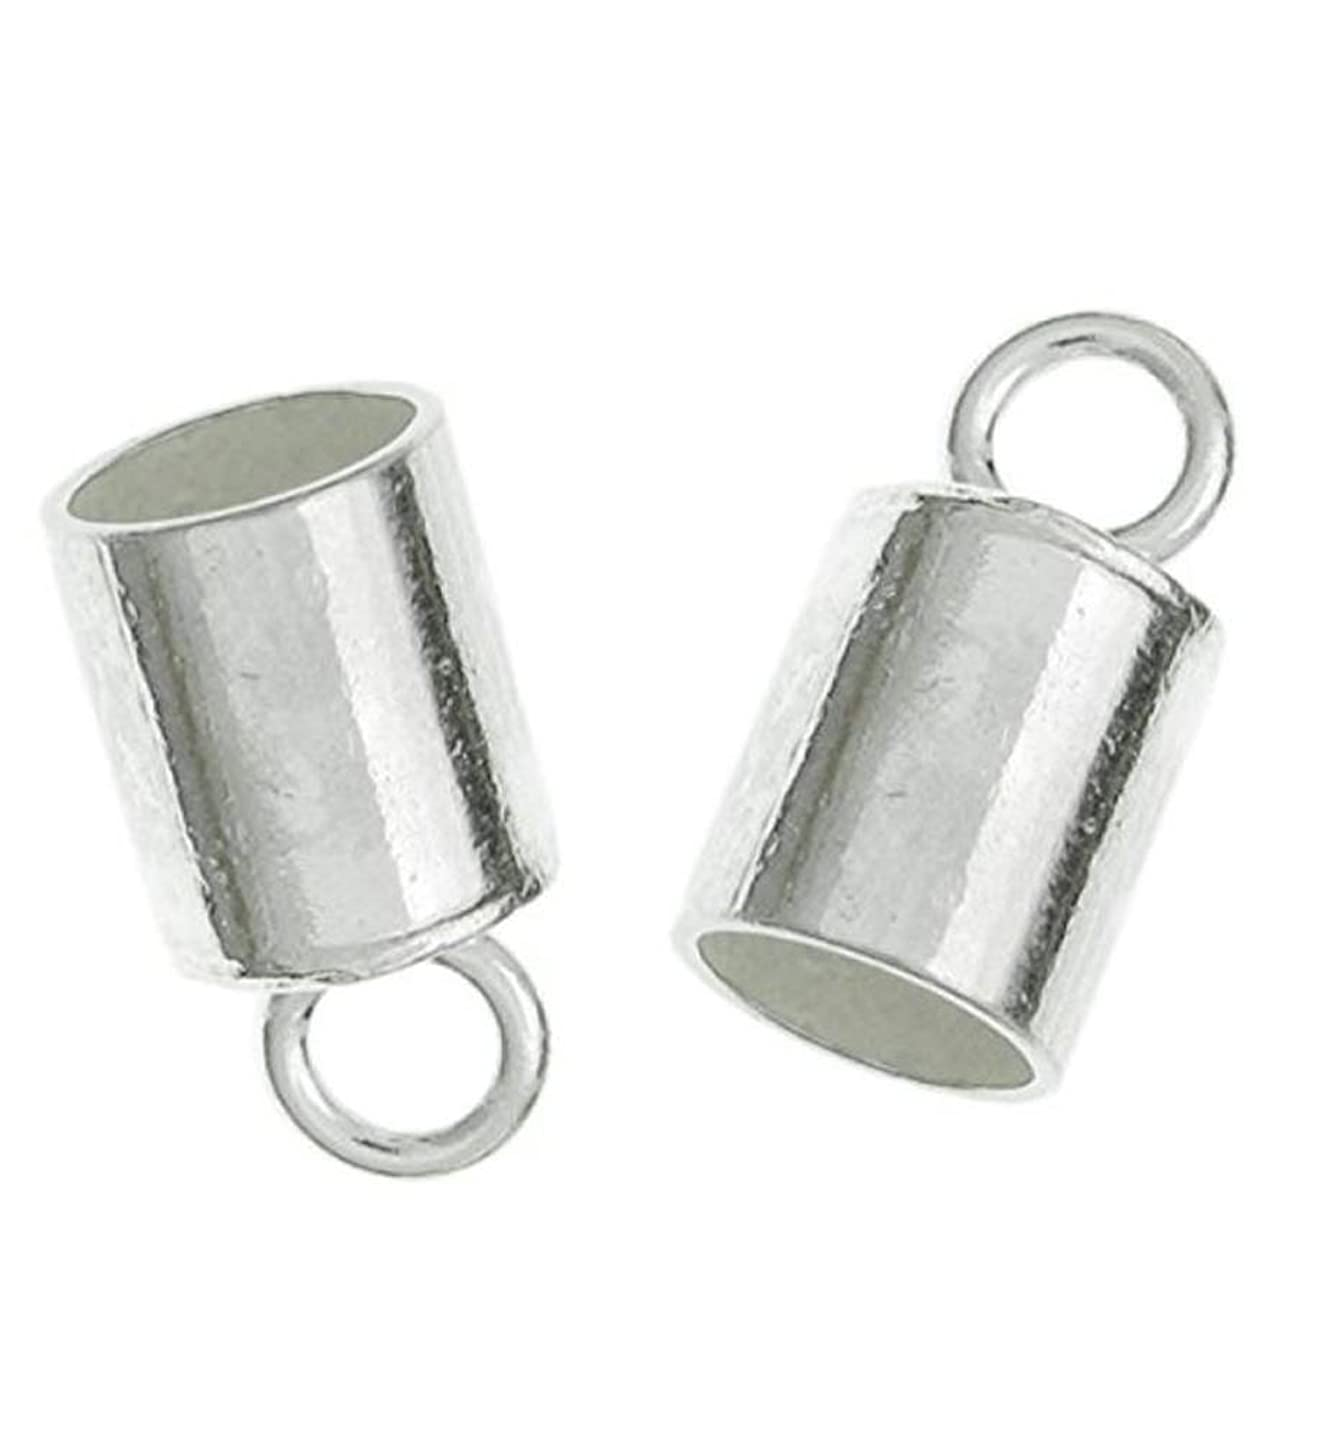 30pcs Sterling Silver Cord Ends Endcap End Caps Barrel for 1.5mm to 2mm Cord Beading Wire Jewelry Craft Making SS259